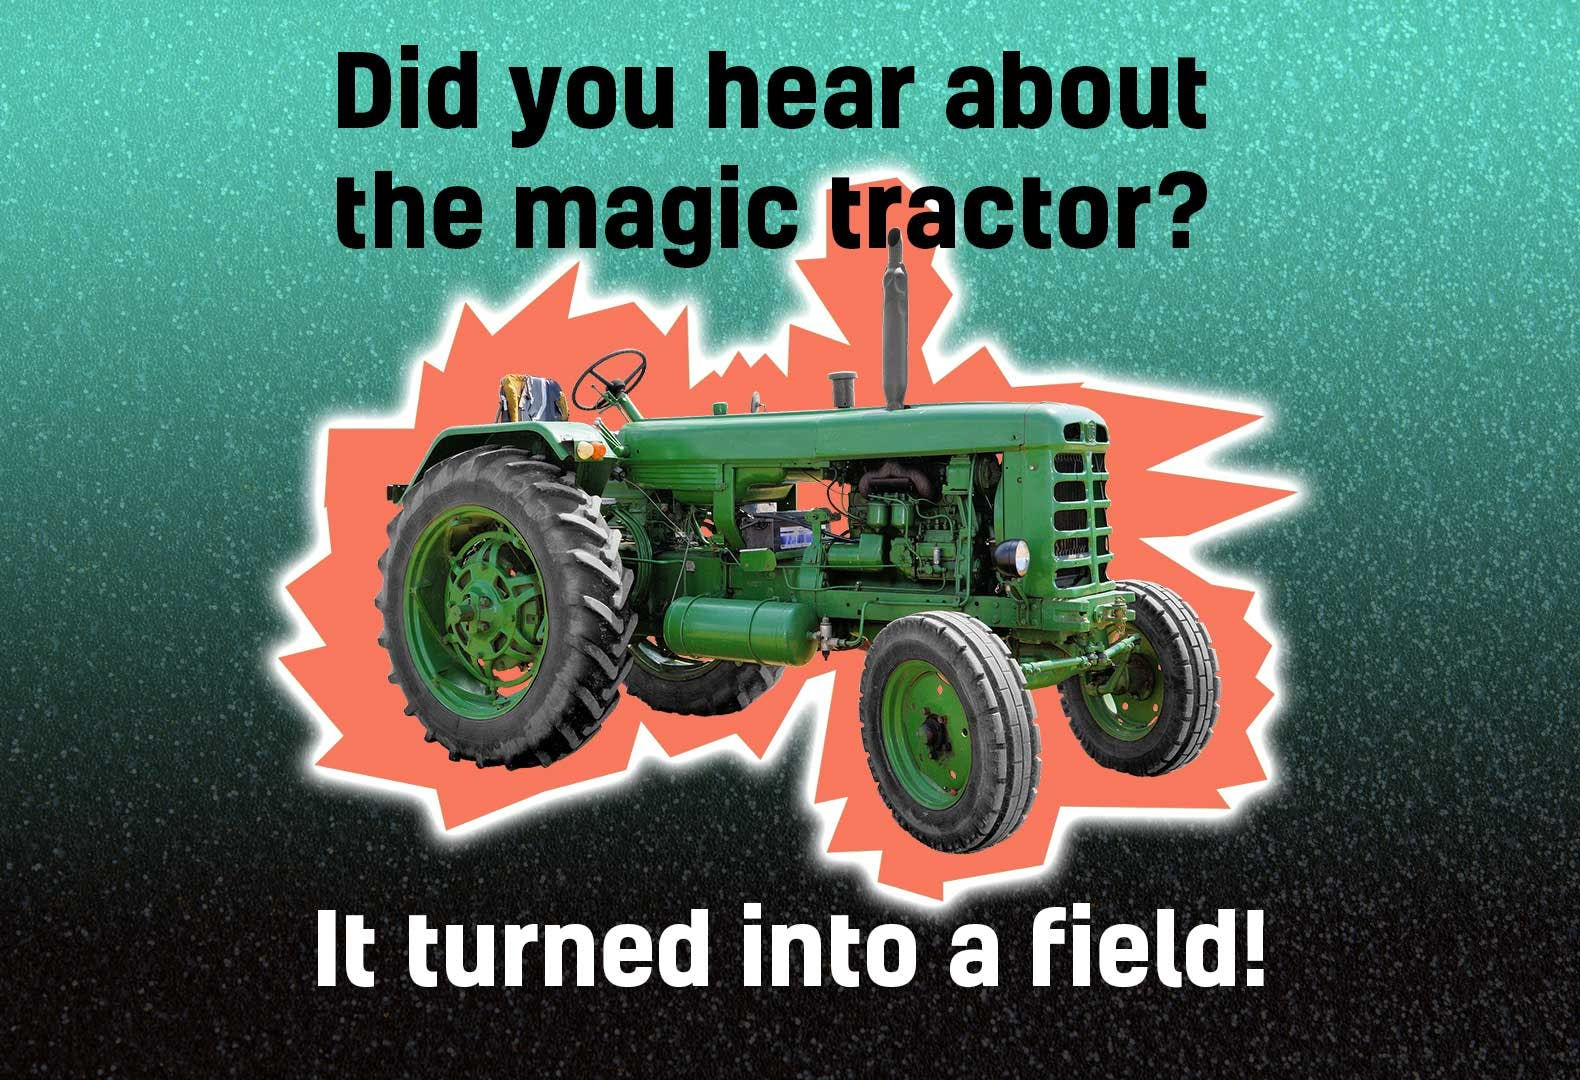 Magic tractor joke